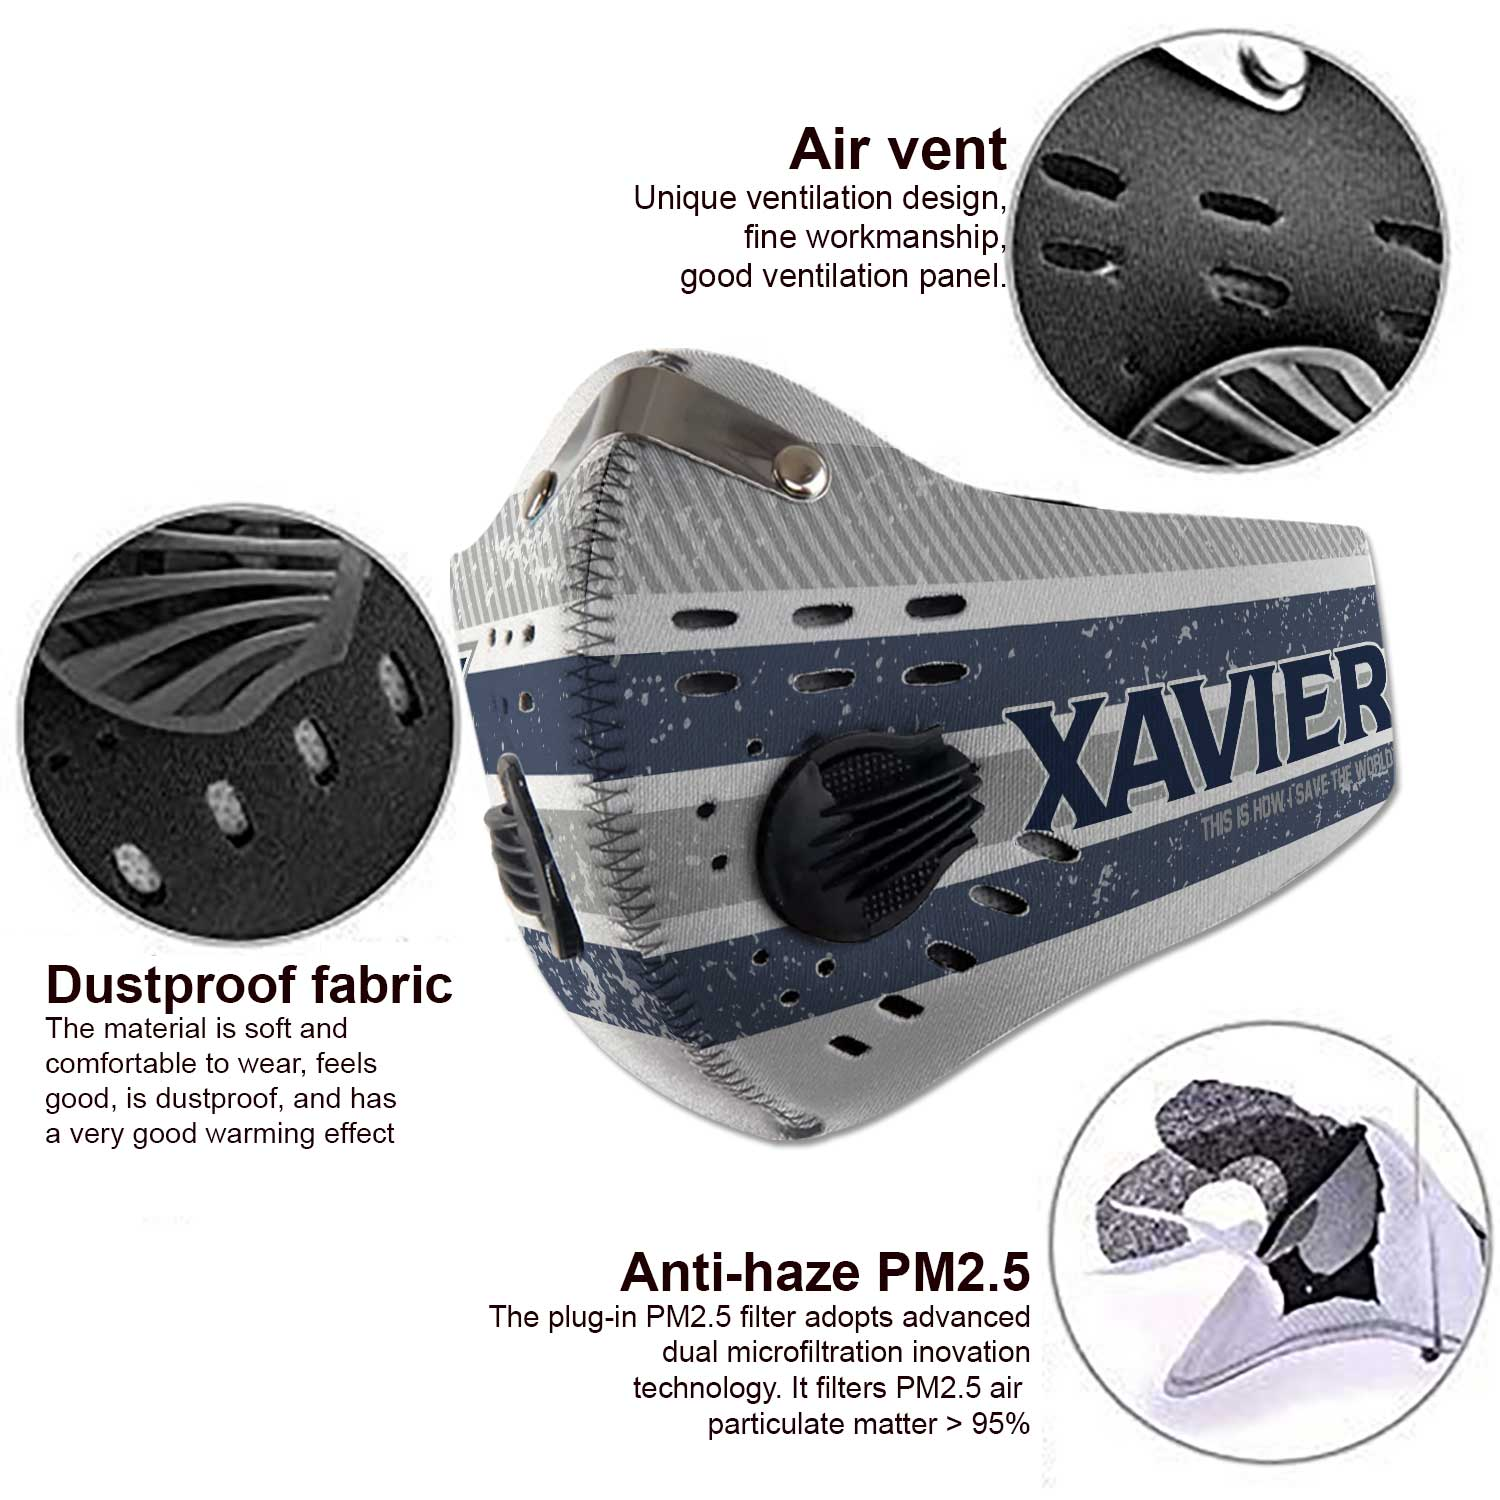 Xavier musketeers this is how i save the world carbon filter face mask 3